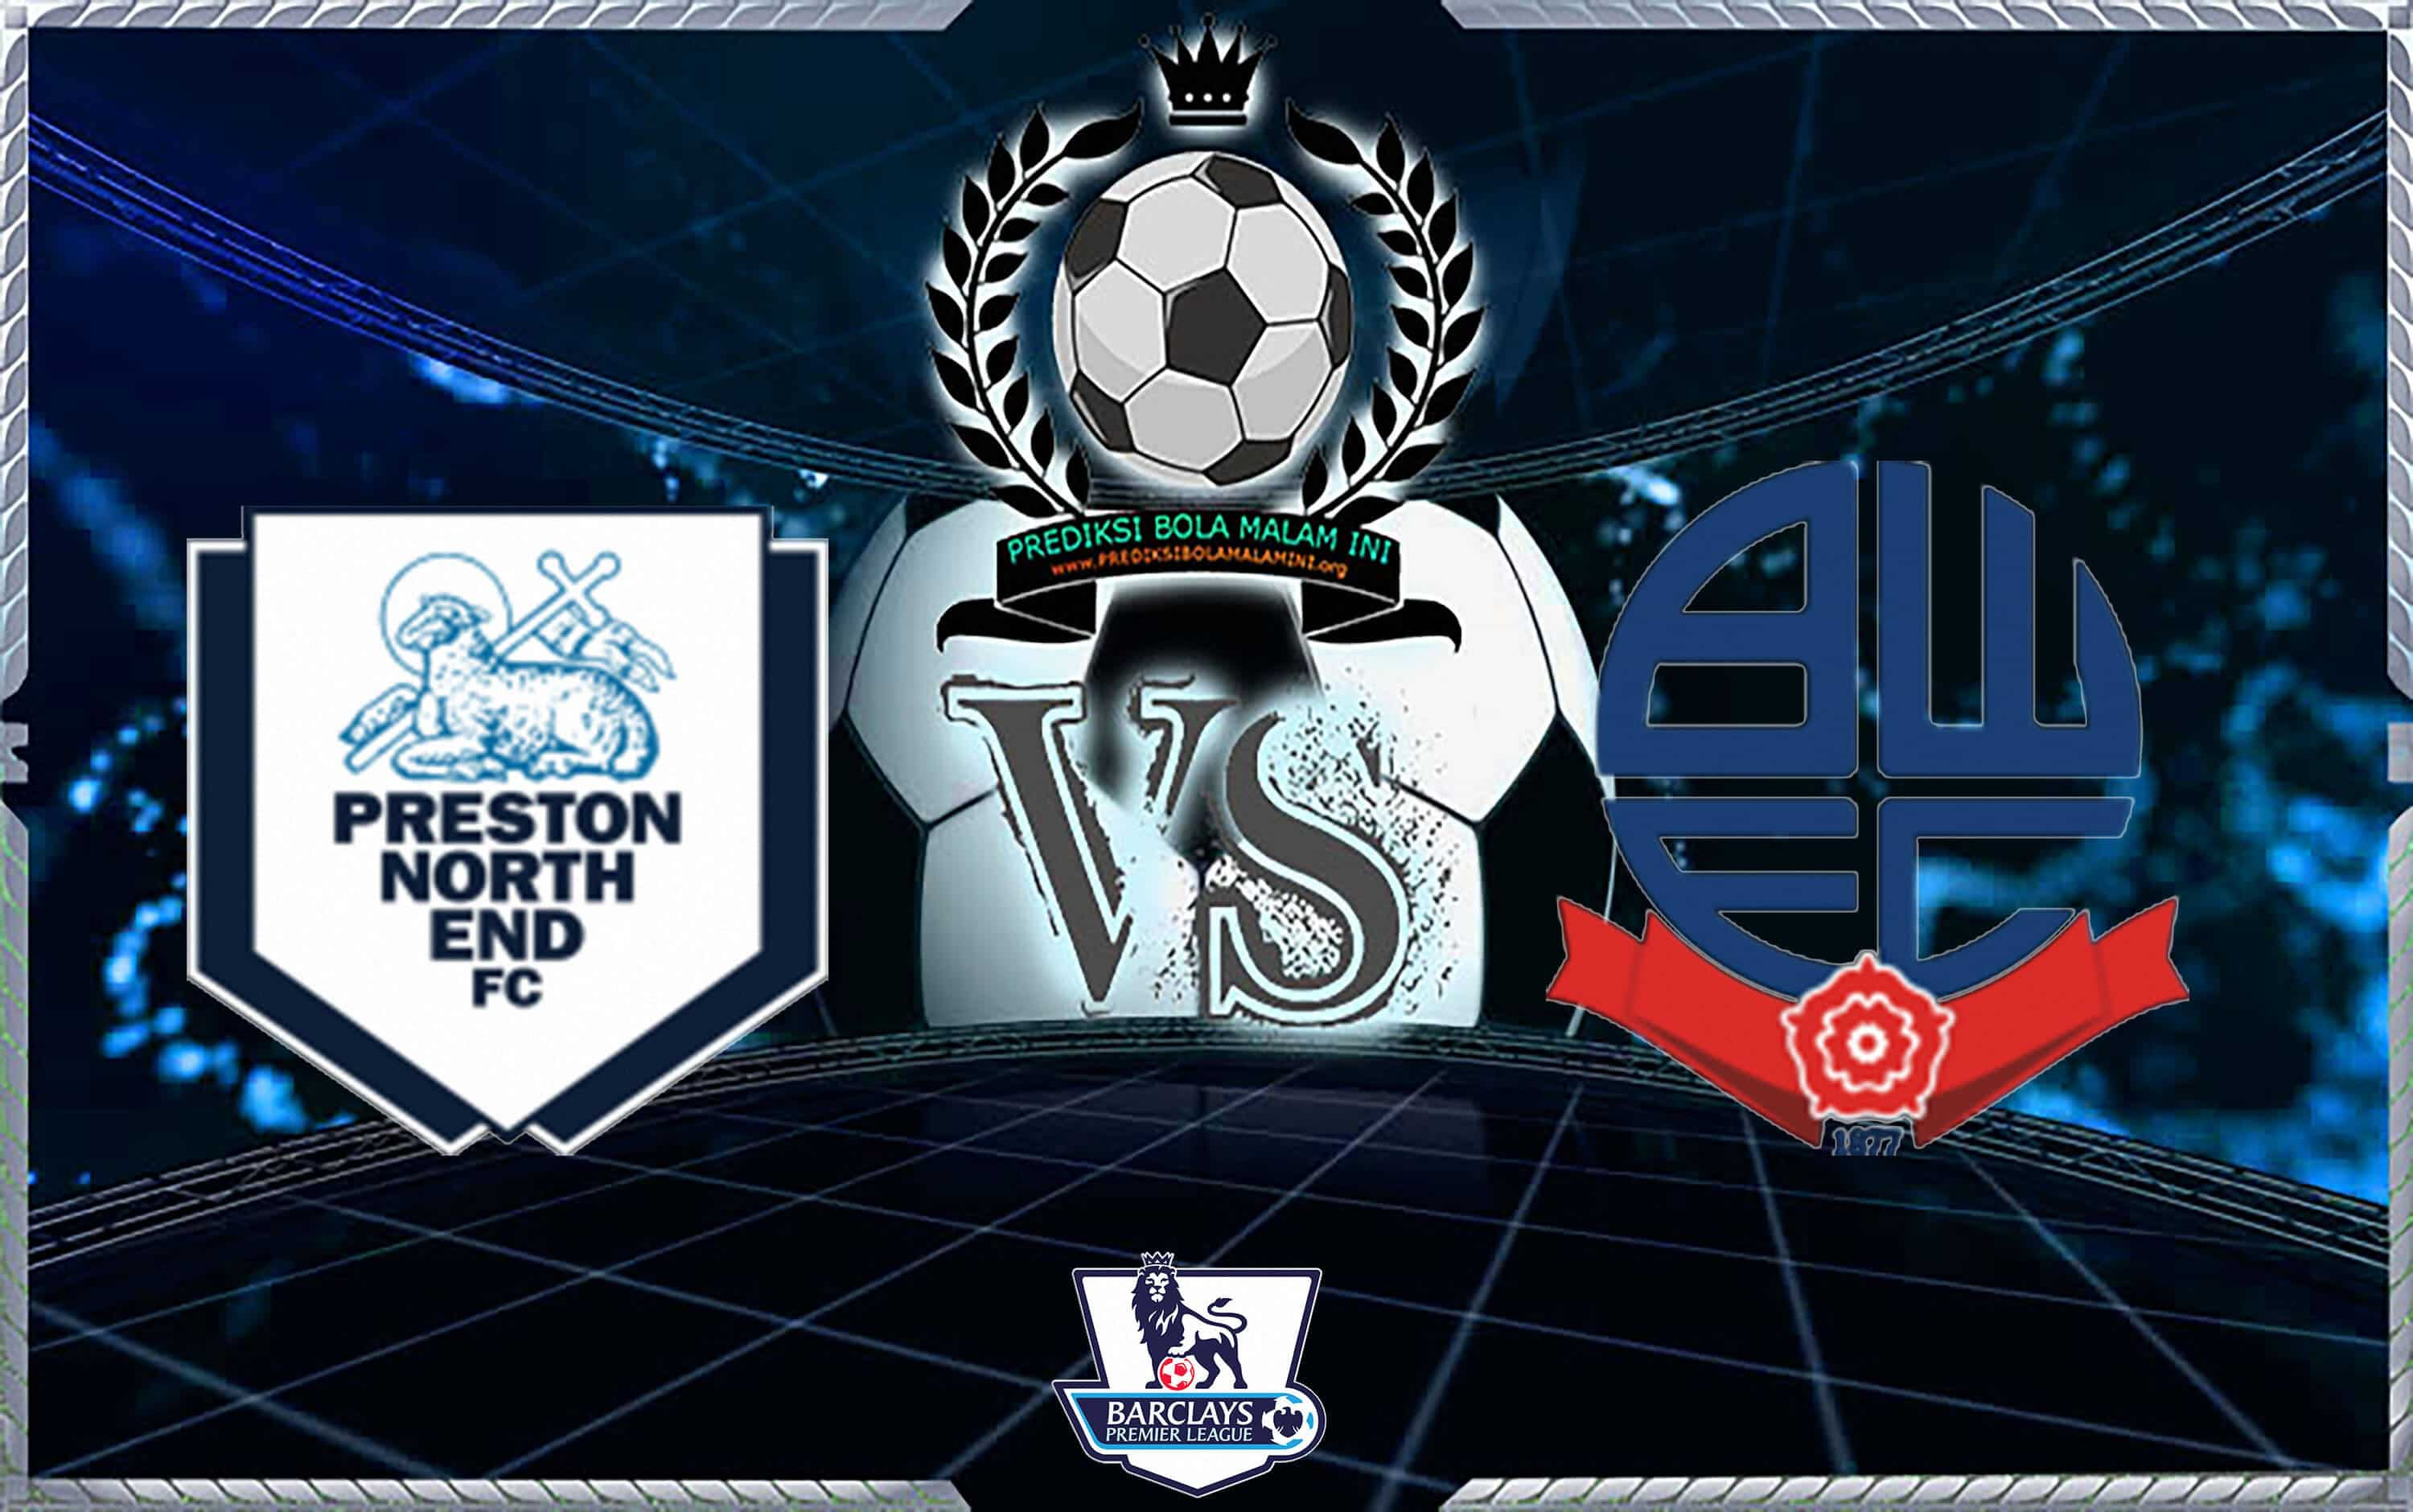 Prediksi Skor PRESTON UTARA AKHIR Vs BOLTON WALLERS 1 September 2018